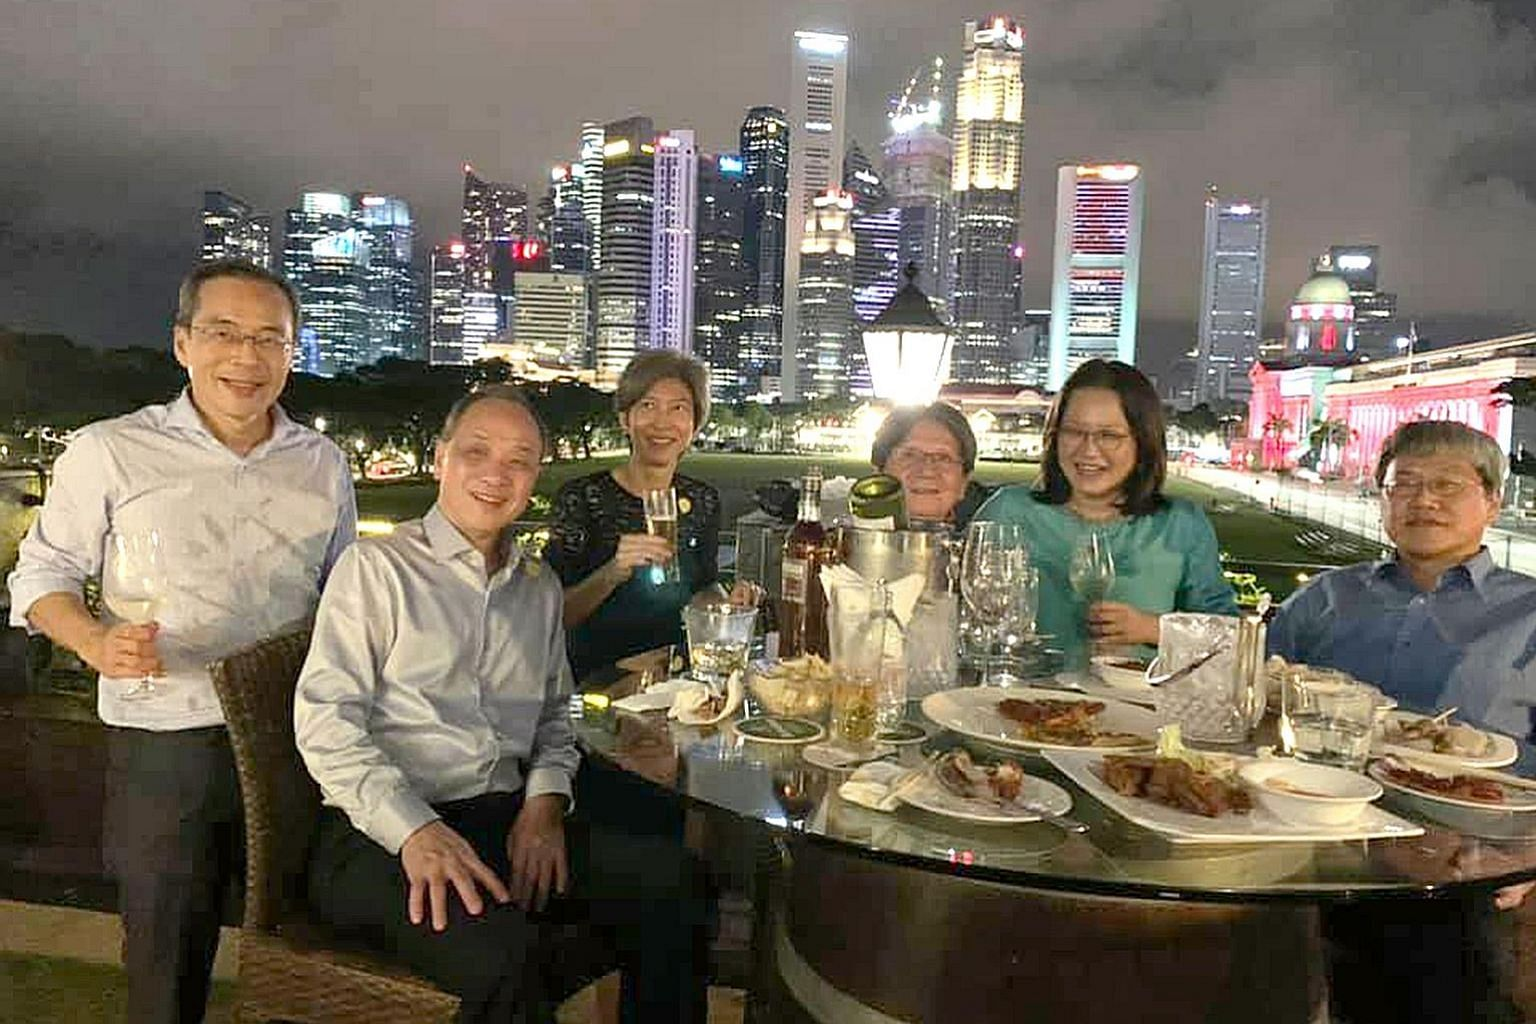 """A picture posted last week by Workers' Party MP Sylvia Lim (second from right) of her having dinner with party colleagues at a rooftop bar near City Hall. She had written: """"Wow, what a skyline."""" With Ms Lim are (from left) Hougang MP Dennis Tan, form"""